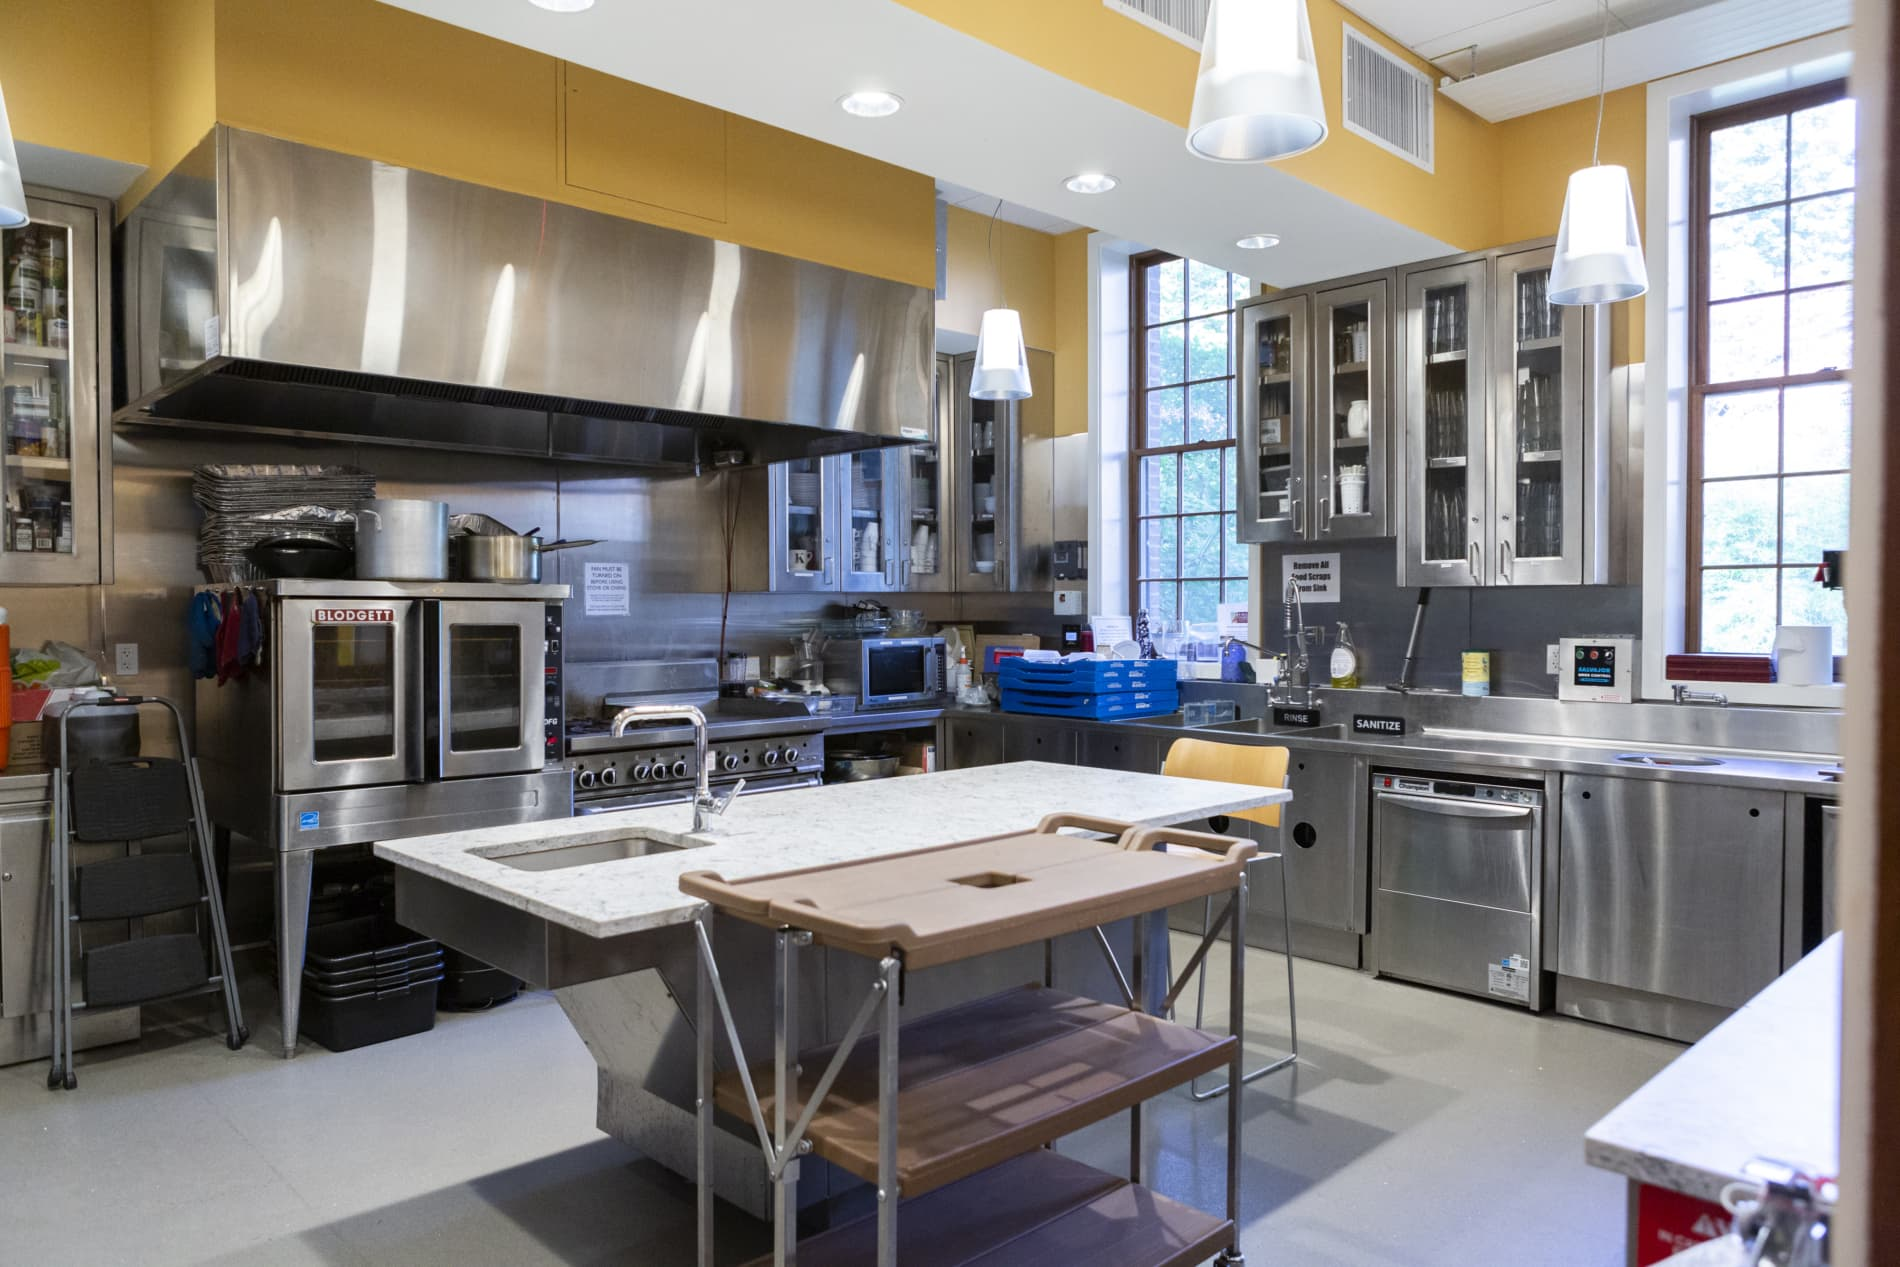 The industrial kitchen of First Church Cambridge